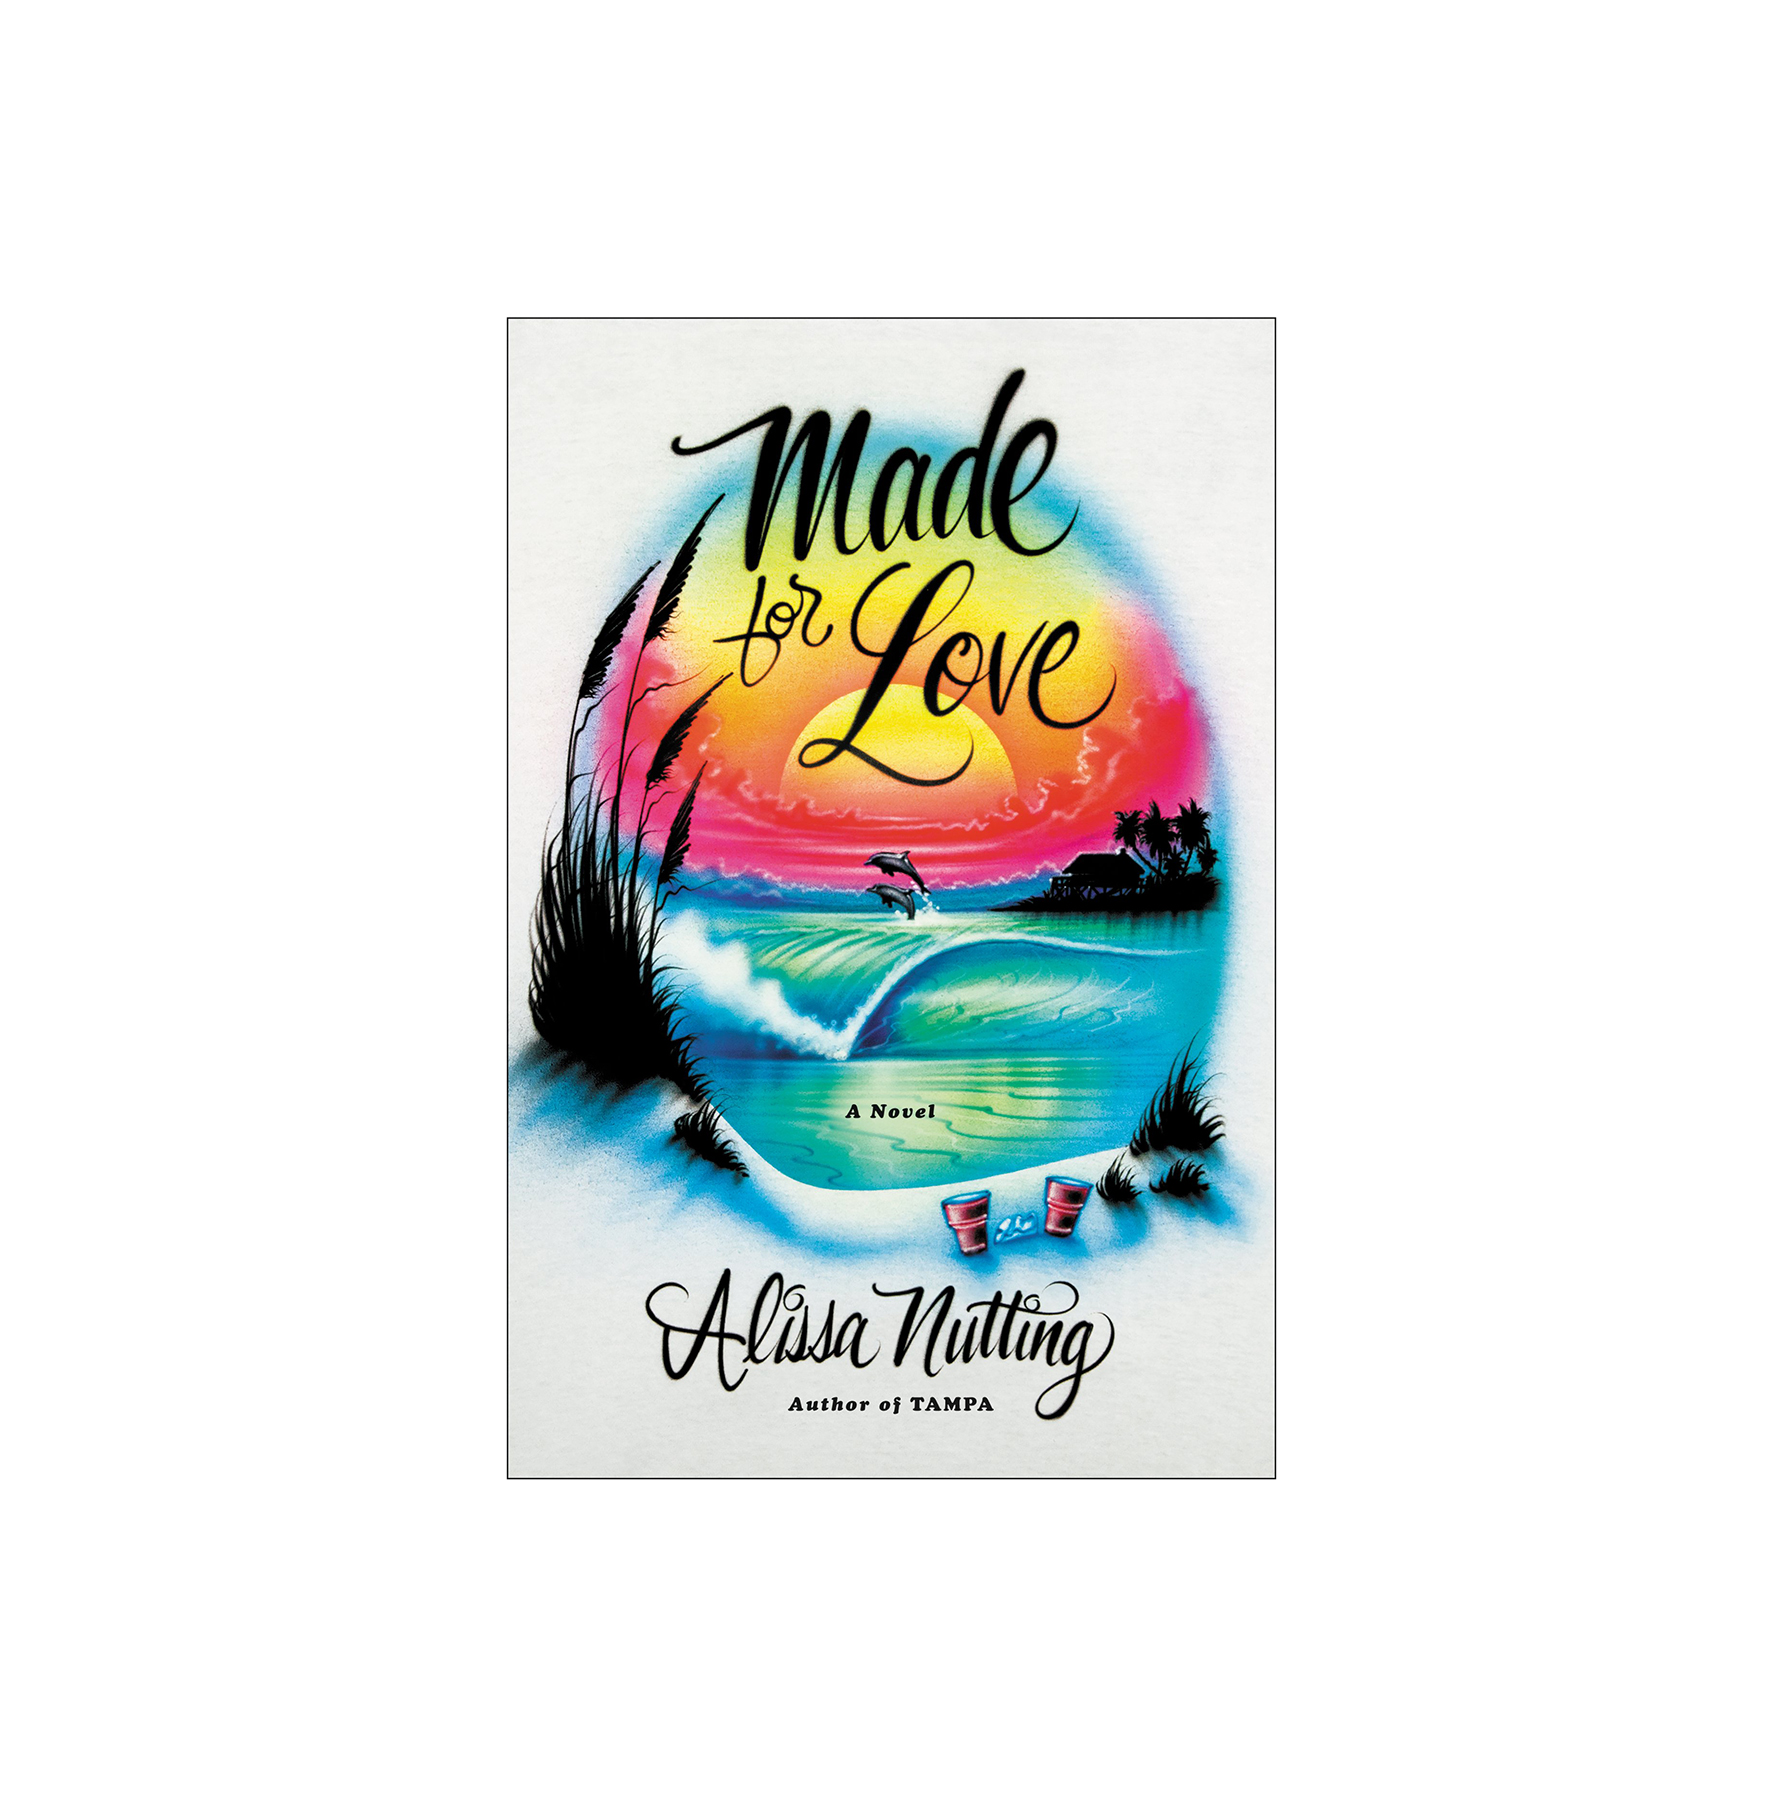 Made for Love, by Alissa Nutting